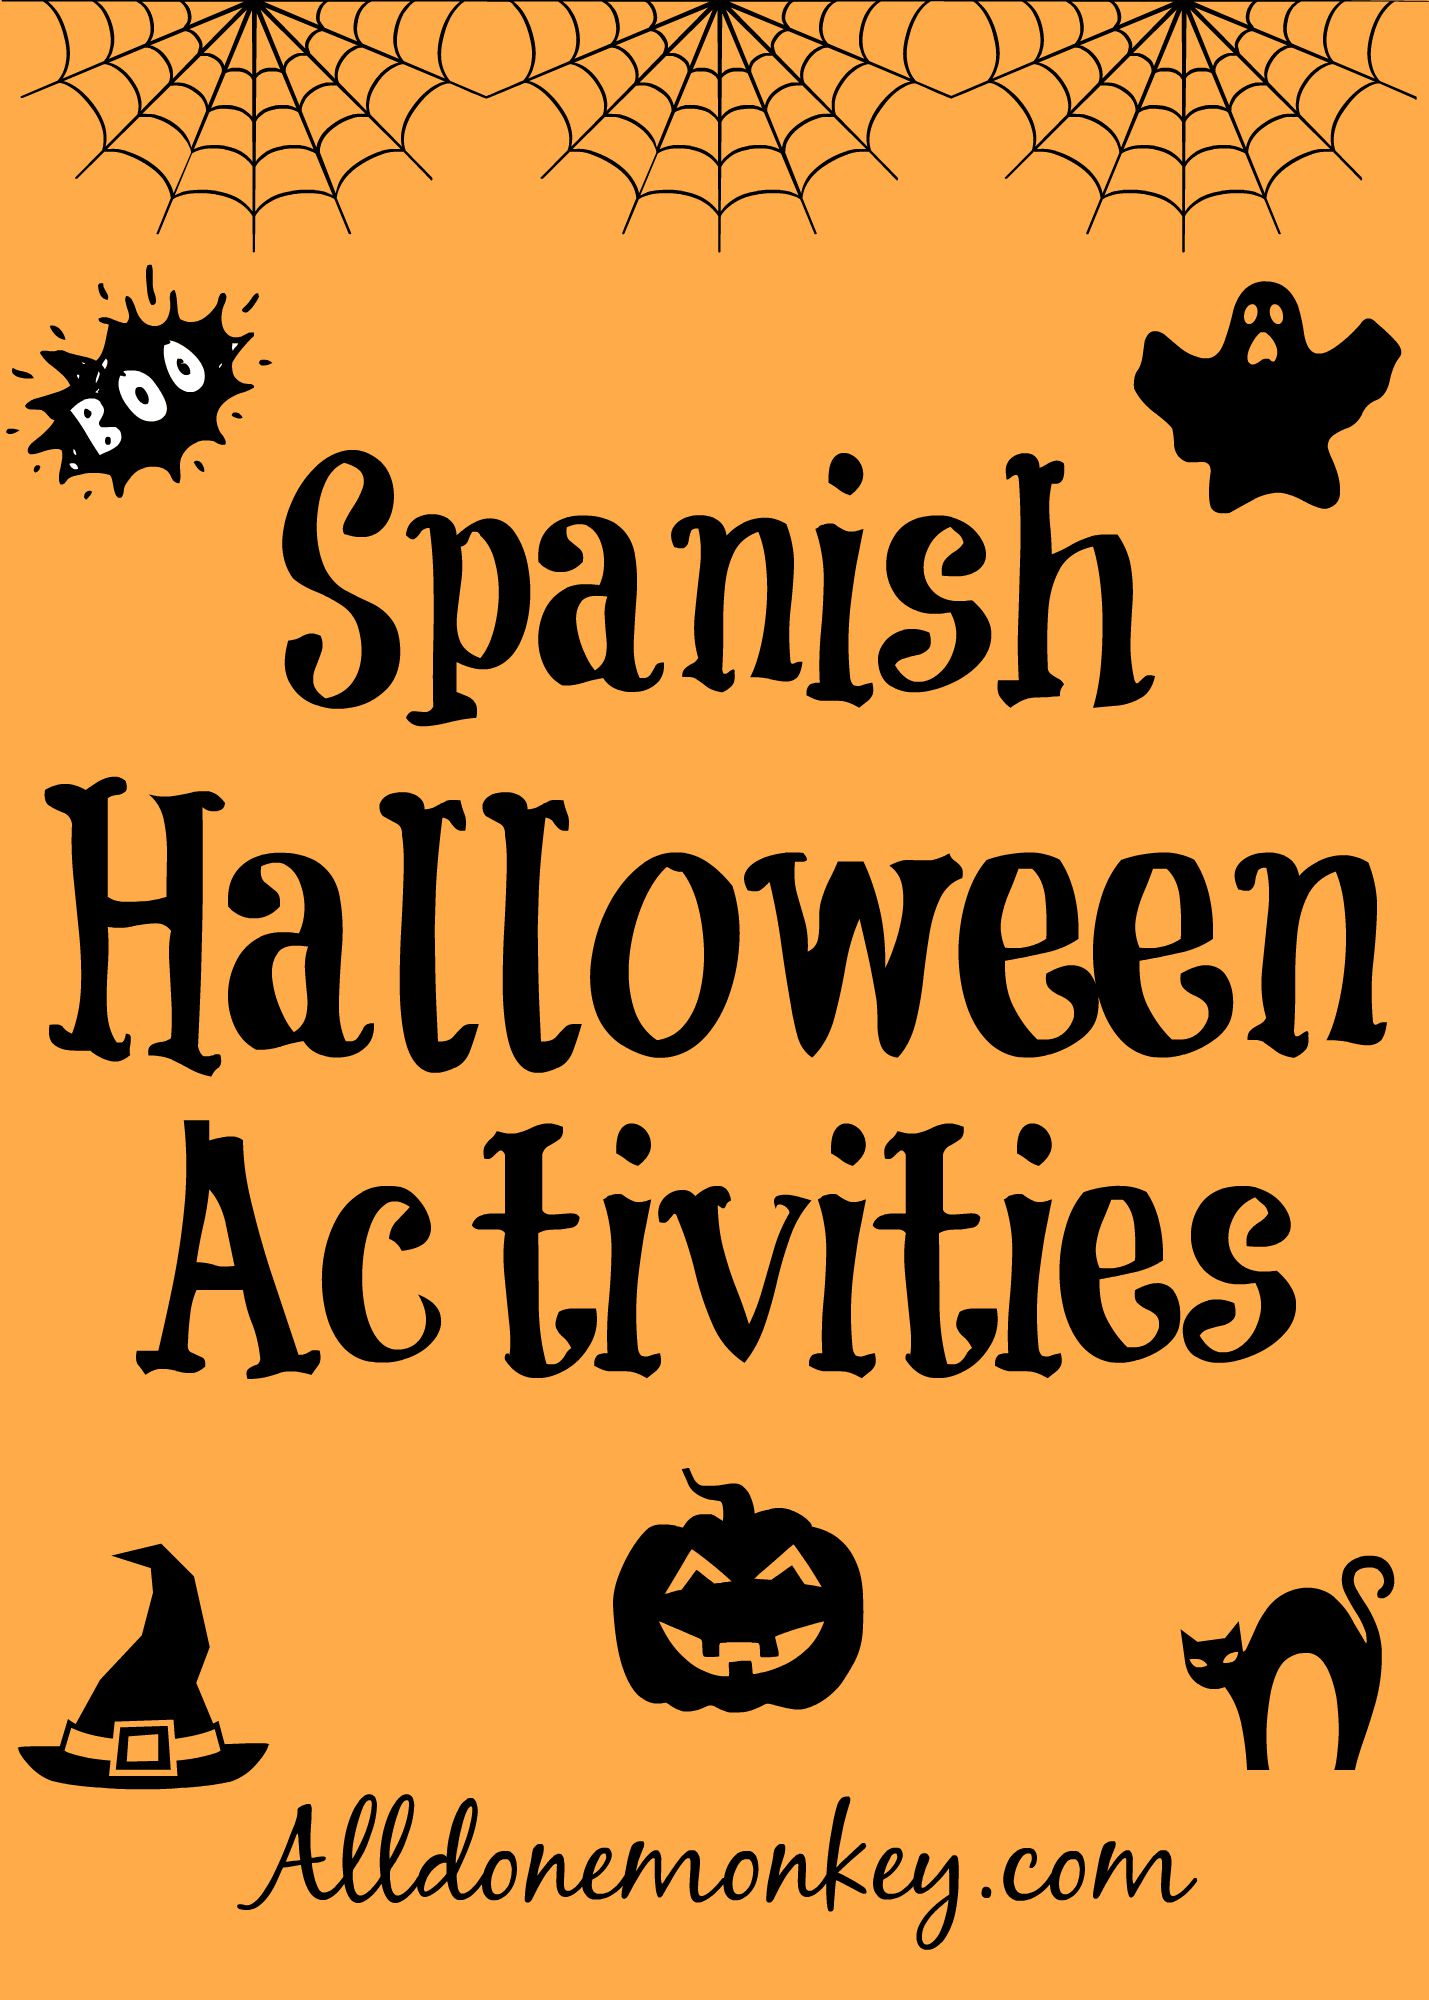 I am always on the lookout for fun activities I can do with my kids to  learn Spanish, and what is more fun this time of year than Halloween?